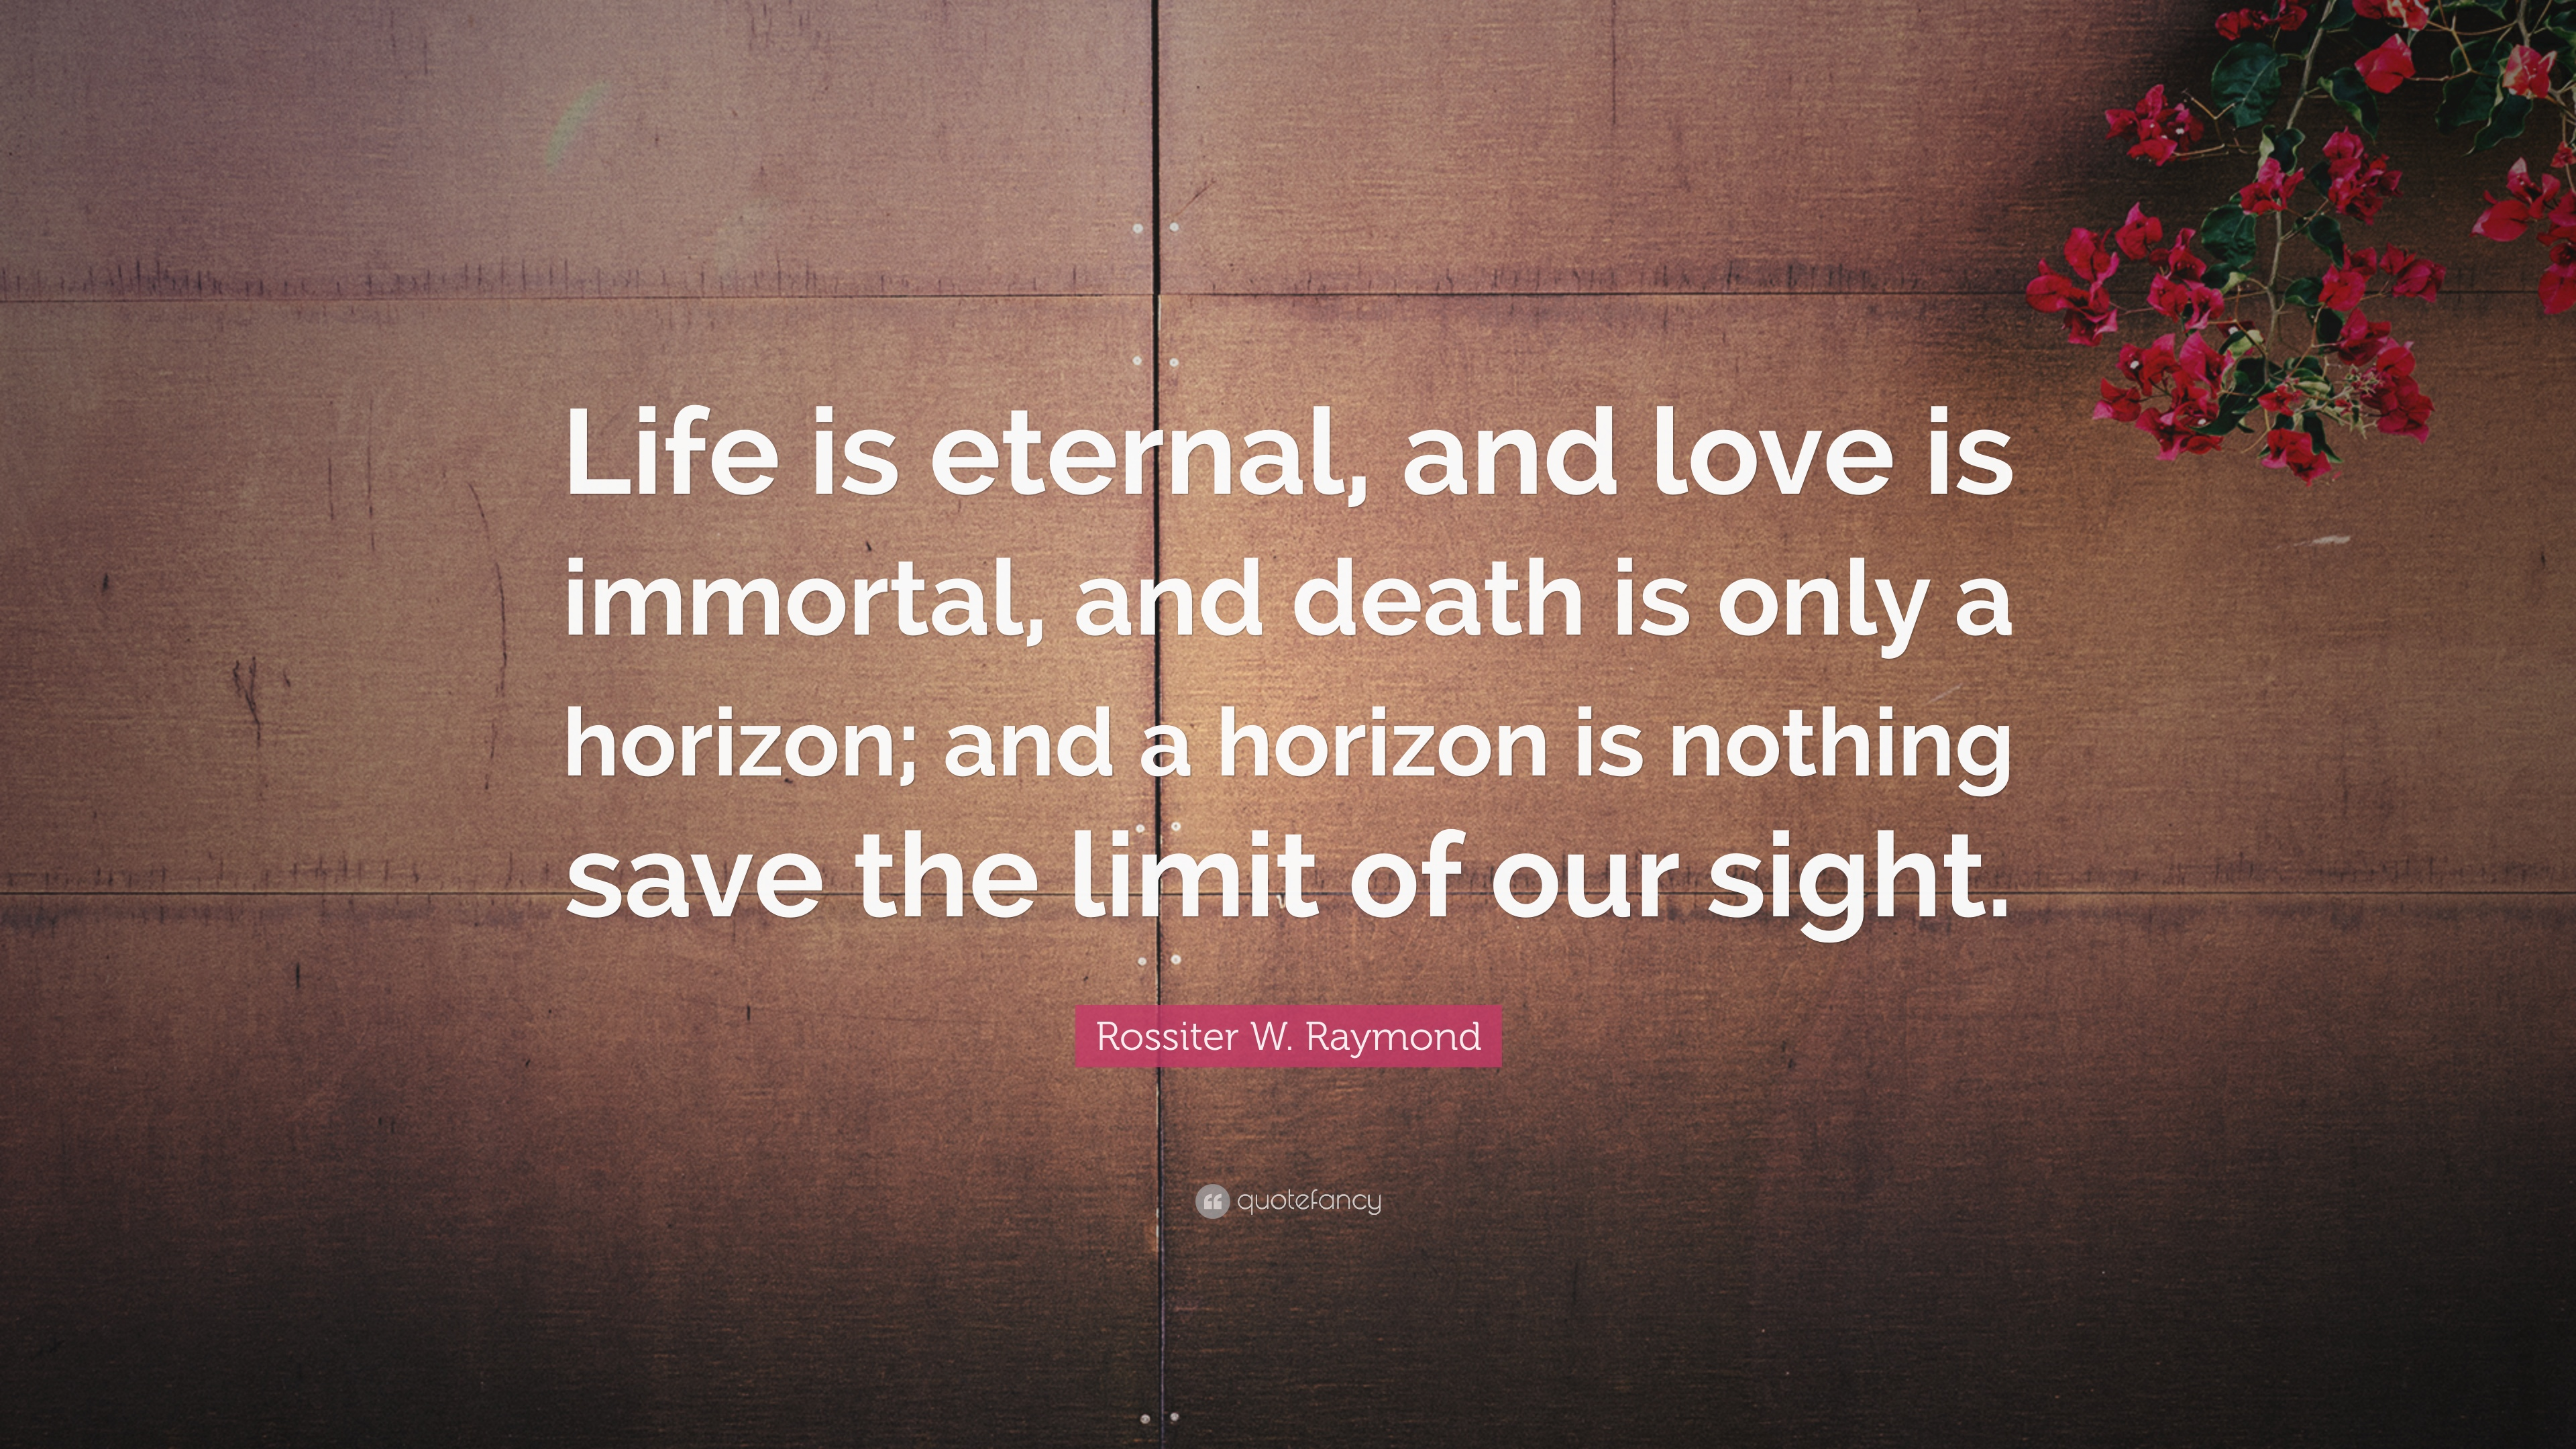 Love Is Eternal Quotes Rossiter Wraymond Quotes 2 Wallpapers  Quotefancy